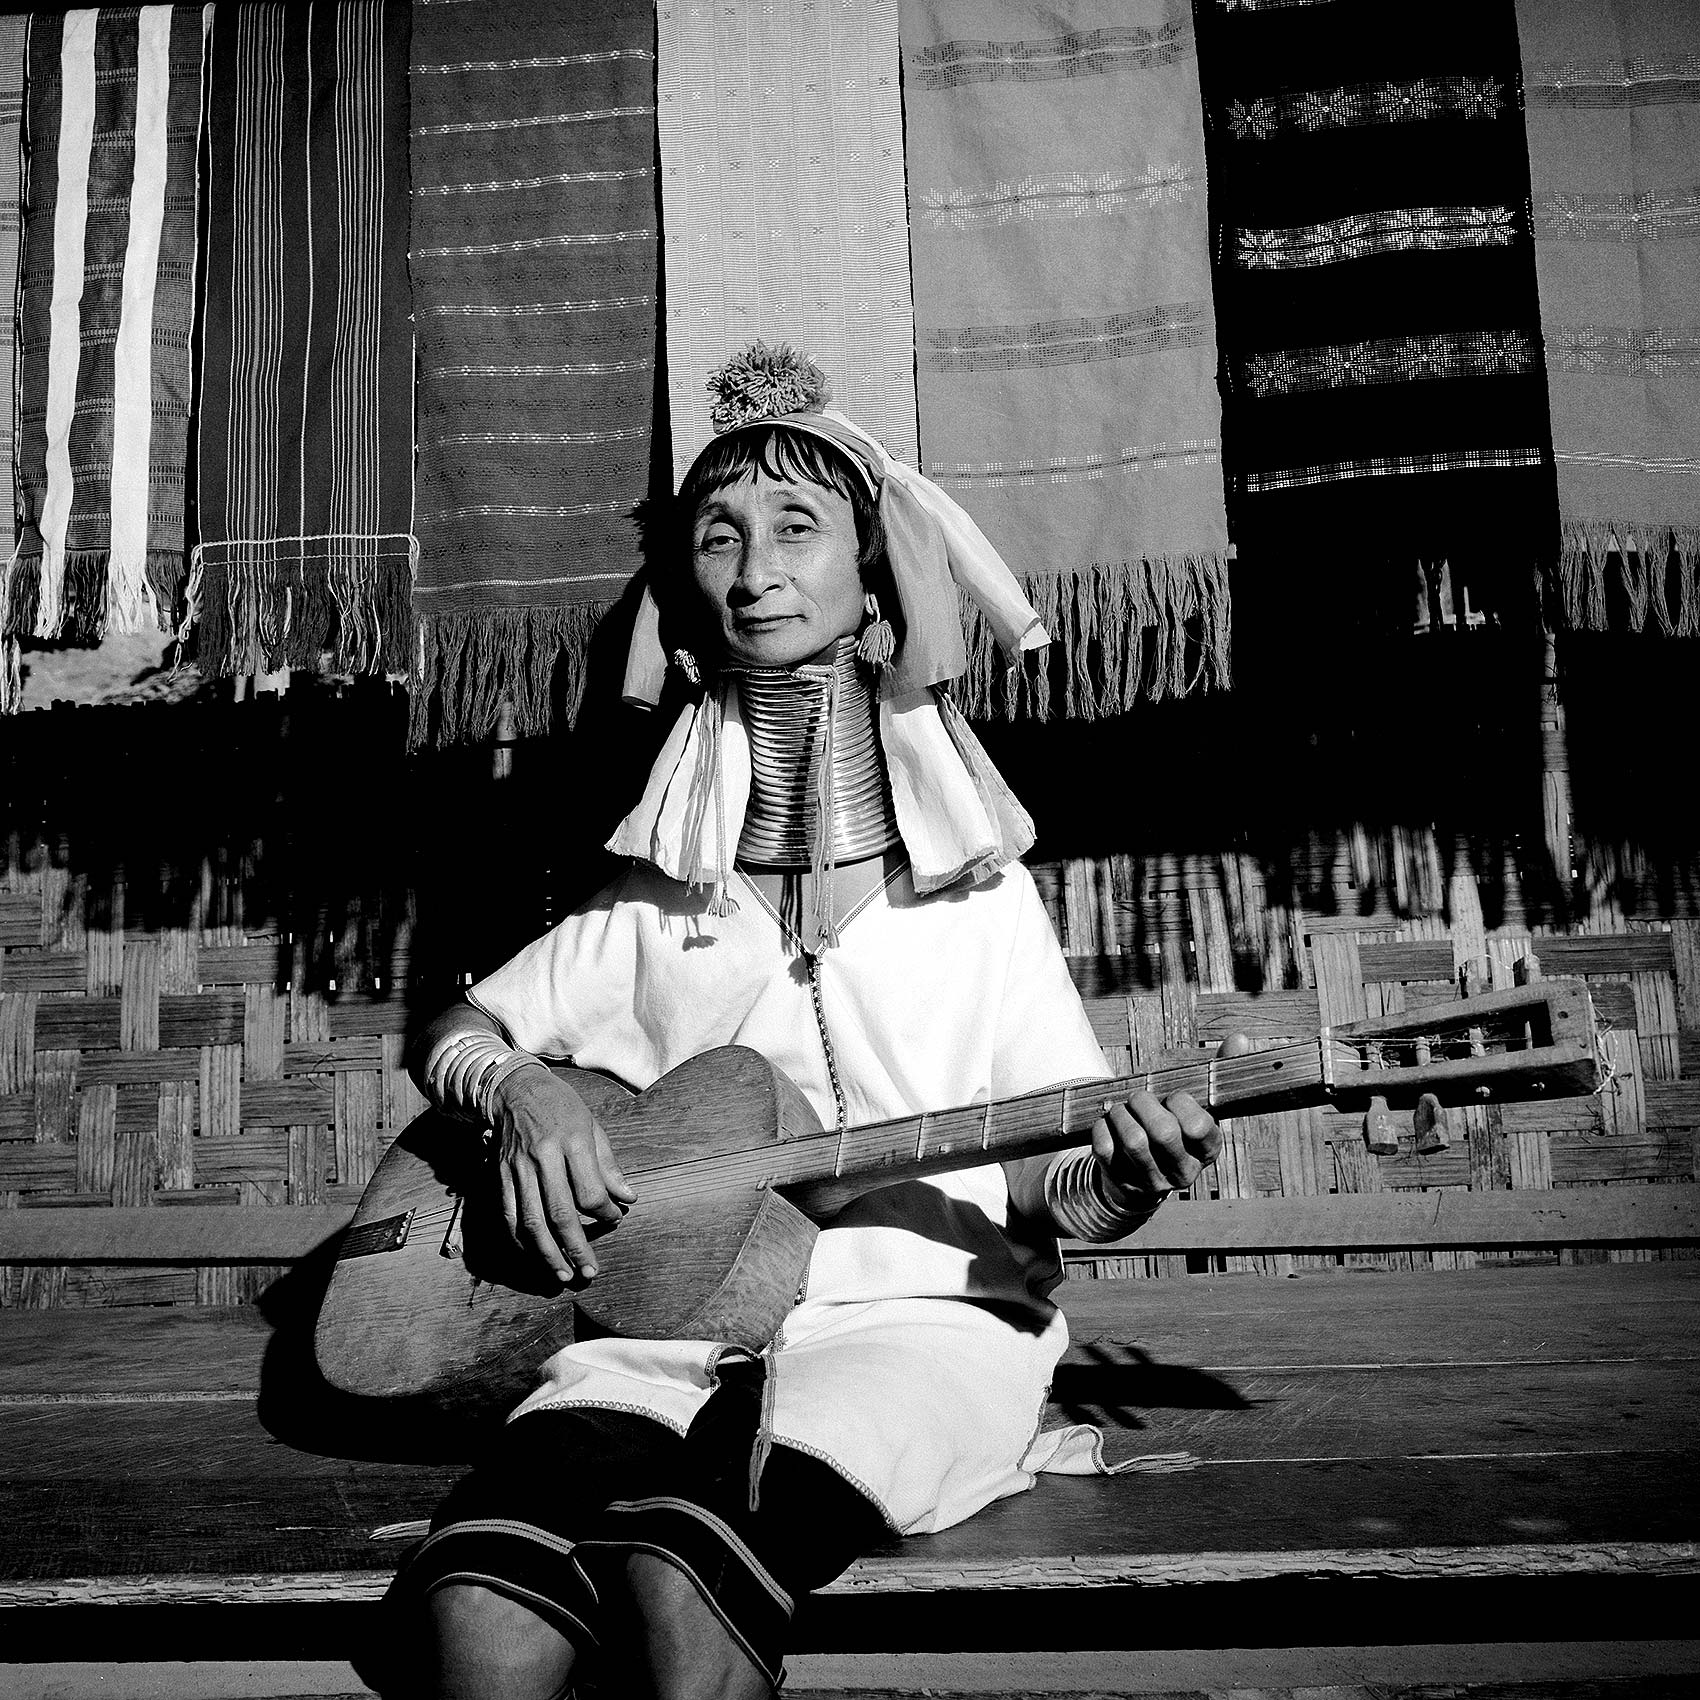 a-woman-from-the-red-karen-tribe-in-burma-plays-the-guitar-in-her-village-in-thailand